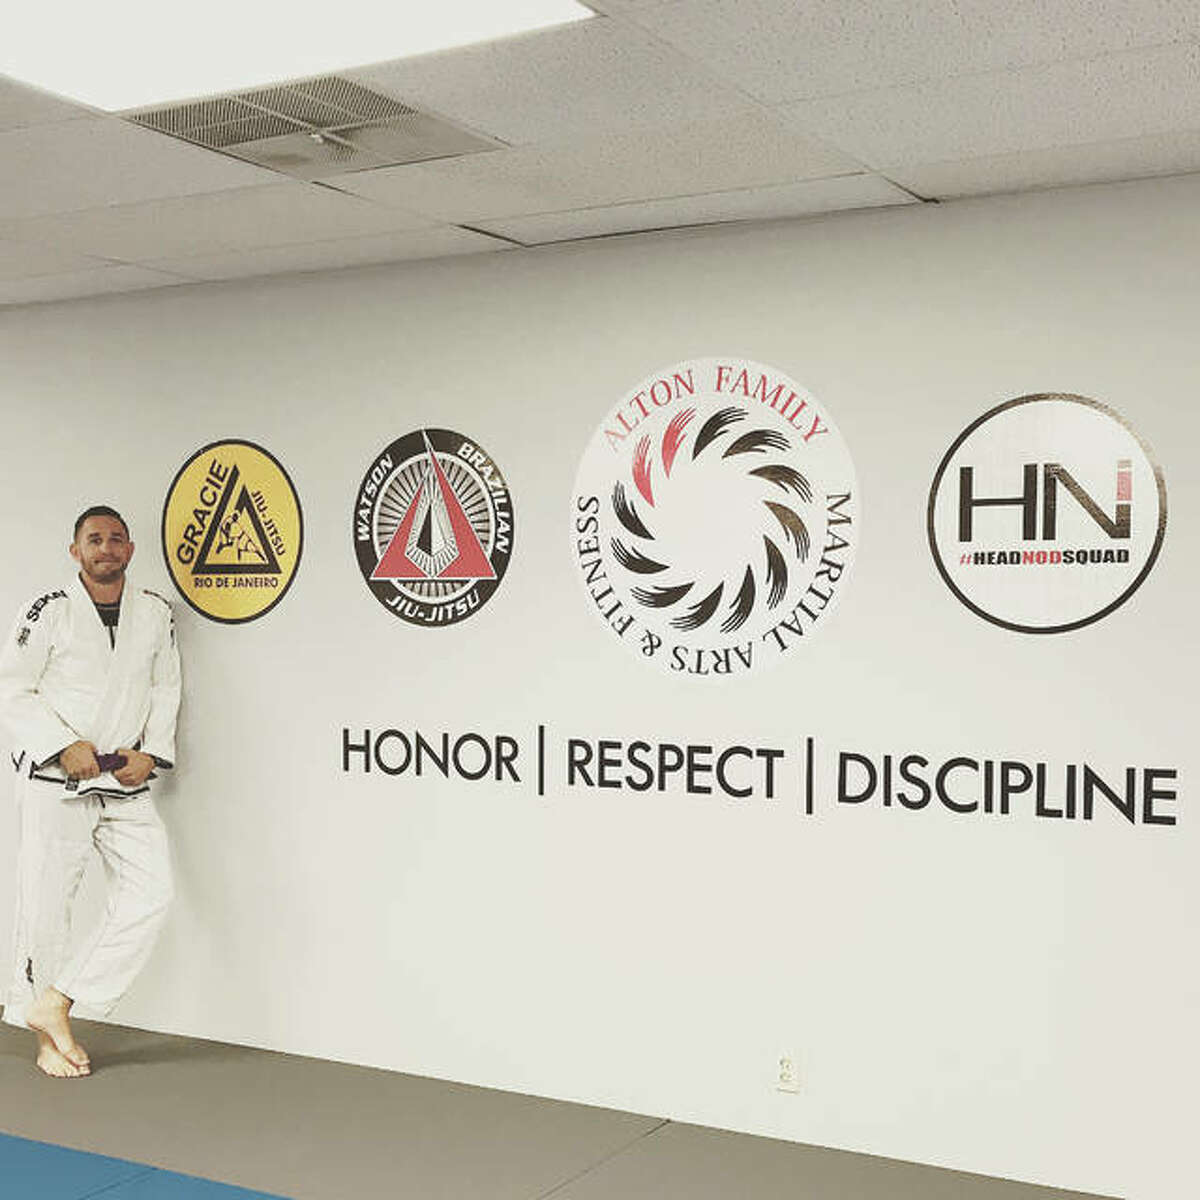 Alton Family Martial Arts and Fitness owner Adam Marburger stands in his newly-renovated space at Nautilus Fitness Center in Alton. Marburger hopes to improve lives through the discipline of martial arts.